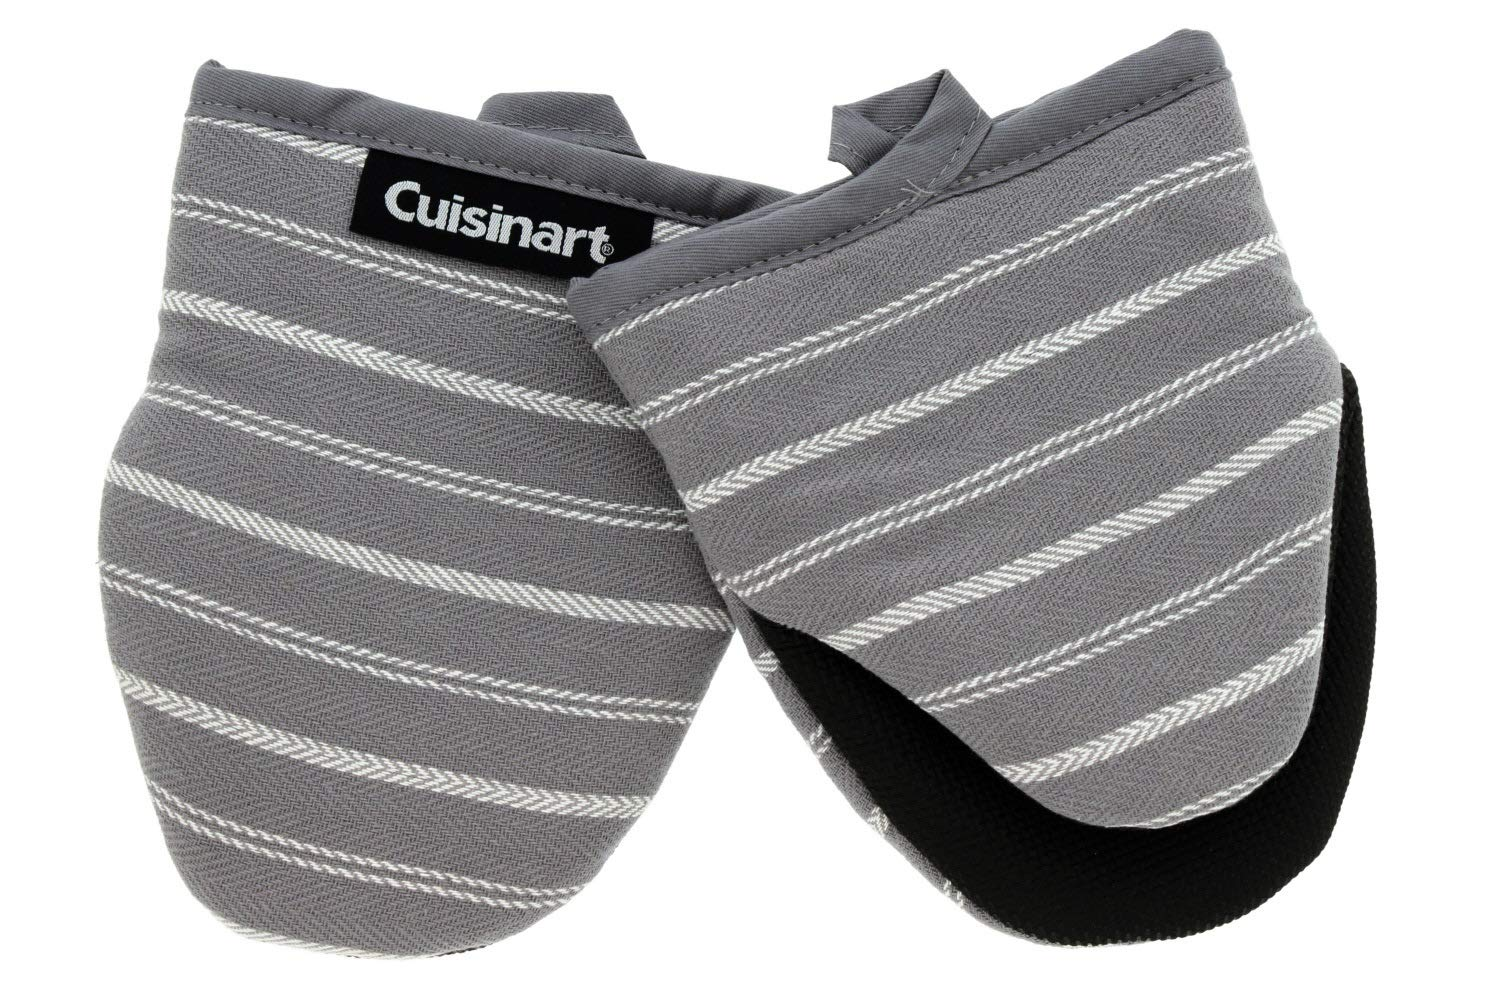 """Cuisinart Neoprene Mini Oven Mitts, 2 Pack – Little Oven Gloves for Cooking - Heat Resistant up to 500 F, Hanging Loop, 5.5"""" x 7""""- Twill Stripe Kitchen Accessory - Titanium Grey"""